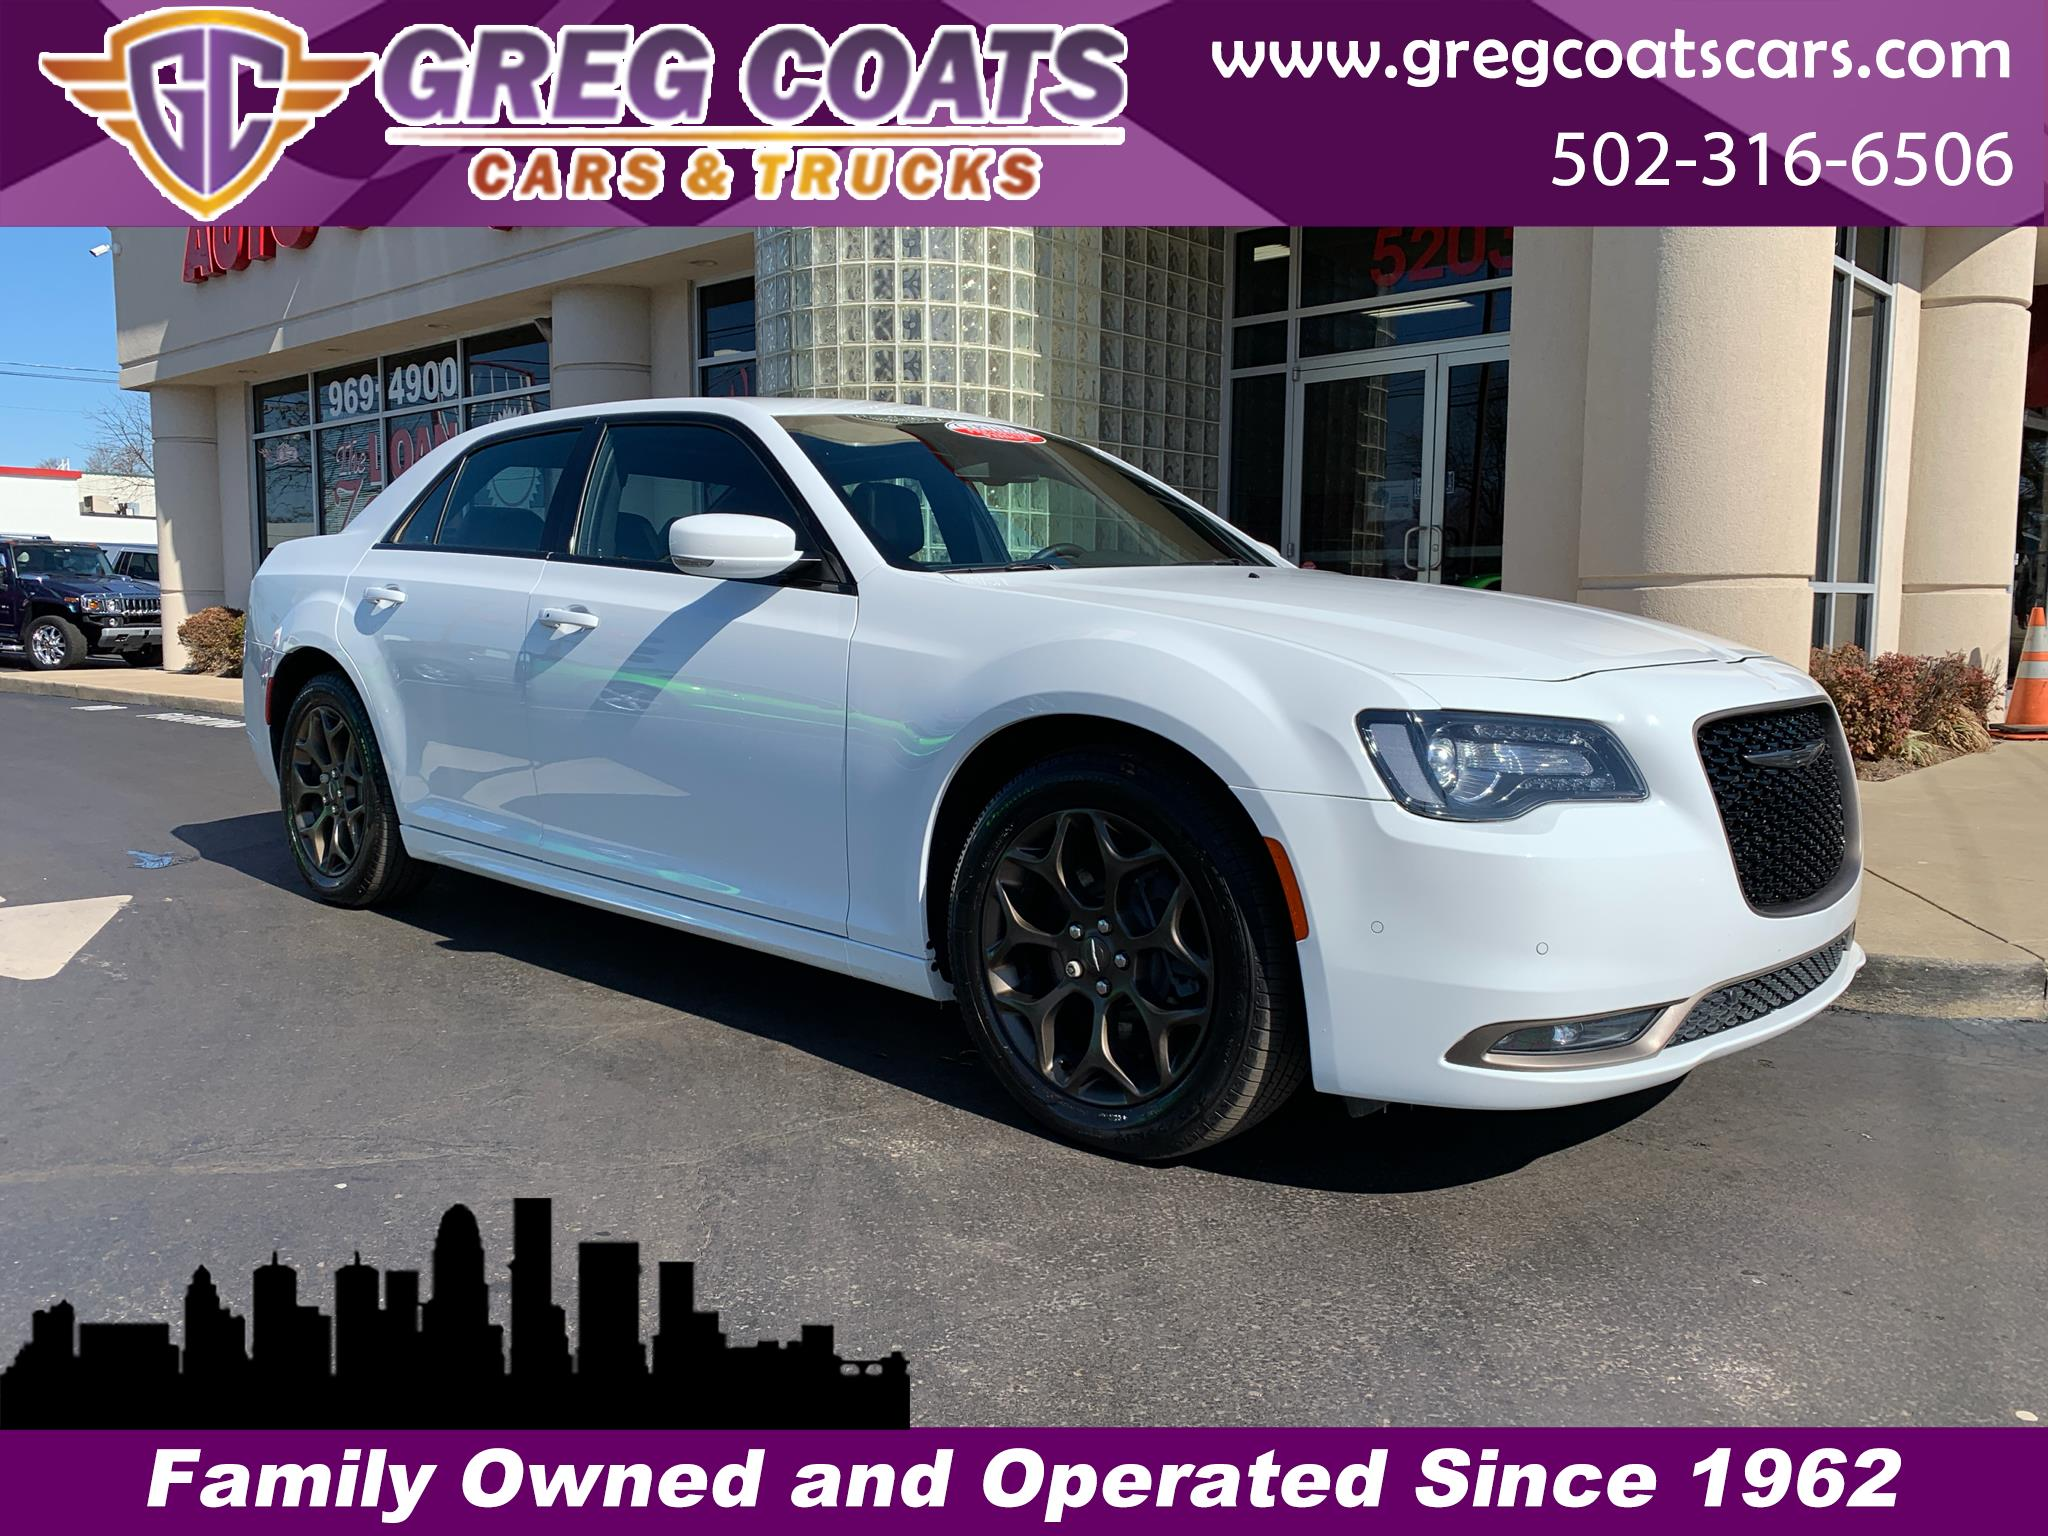 2017 Chrysler 300 4dr Sdn 300S Alloy Edition AWD